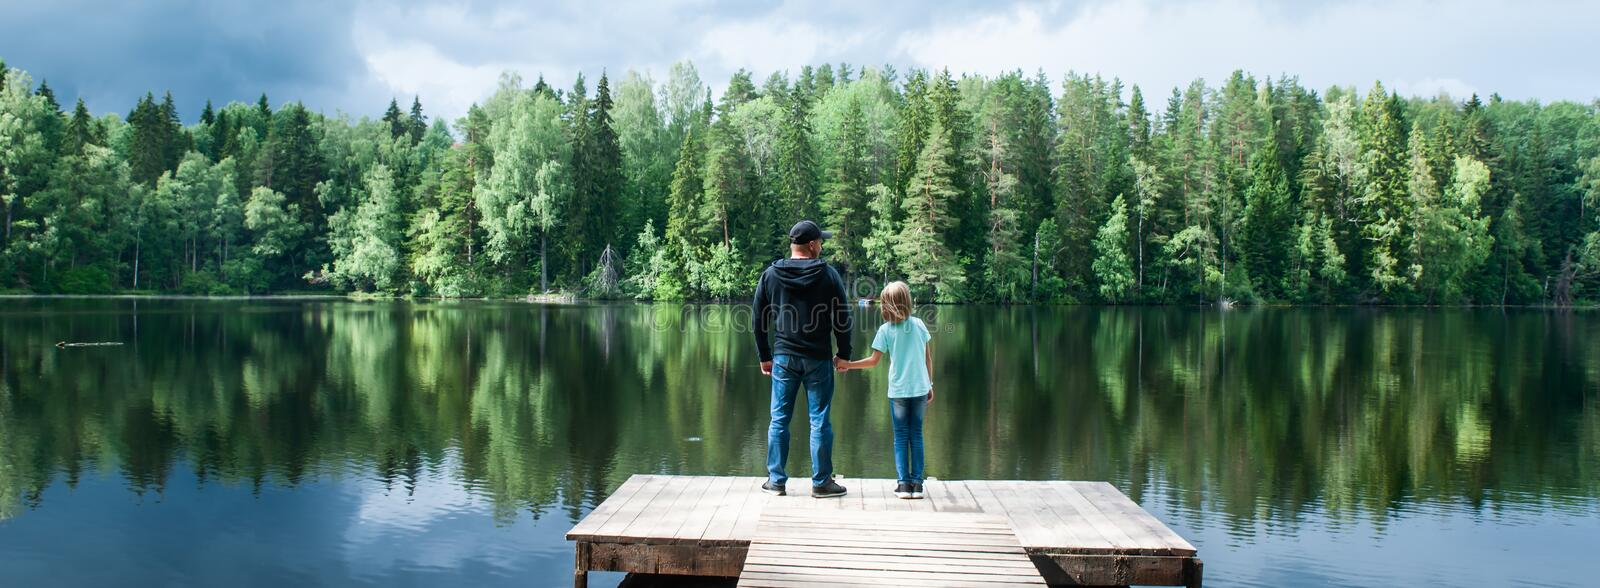 Father with a small daughter are standing on the pier of a beautiful lake, the father is opening a new world for his daughter. royalty free stock images